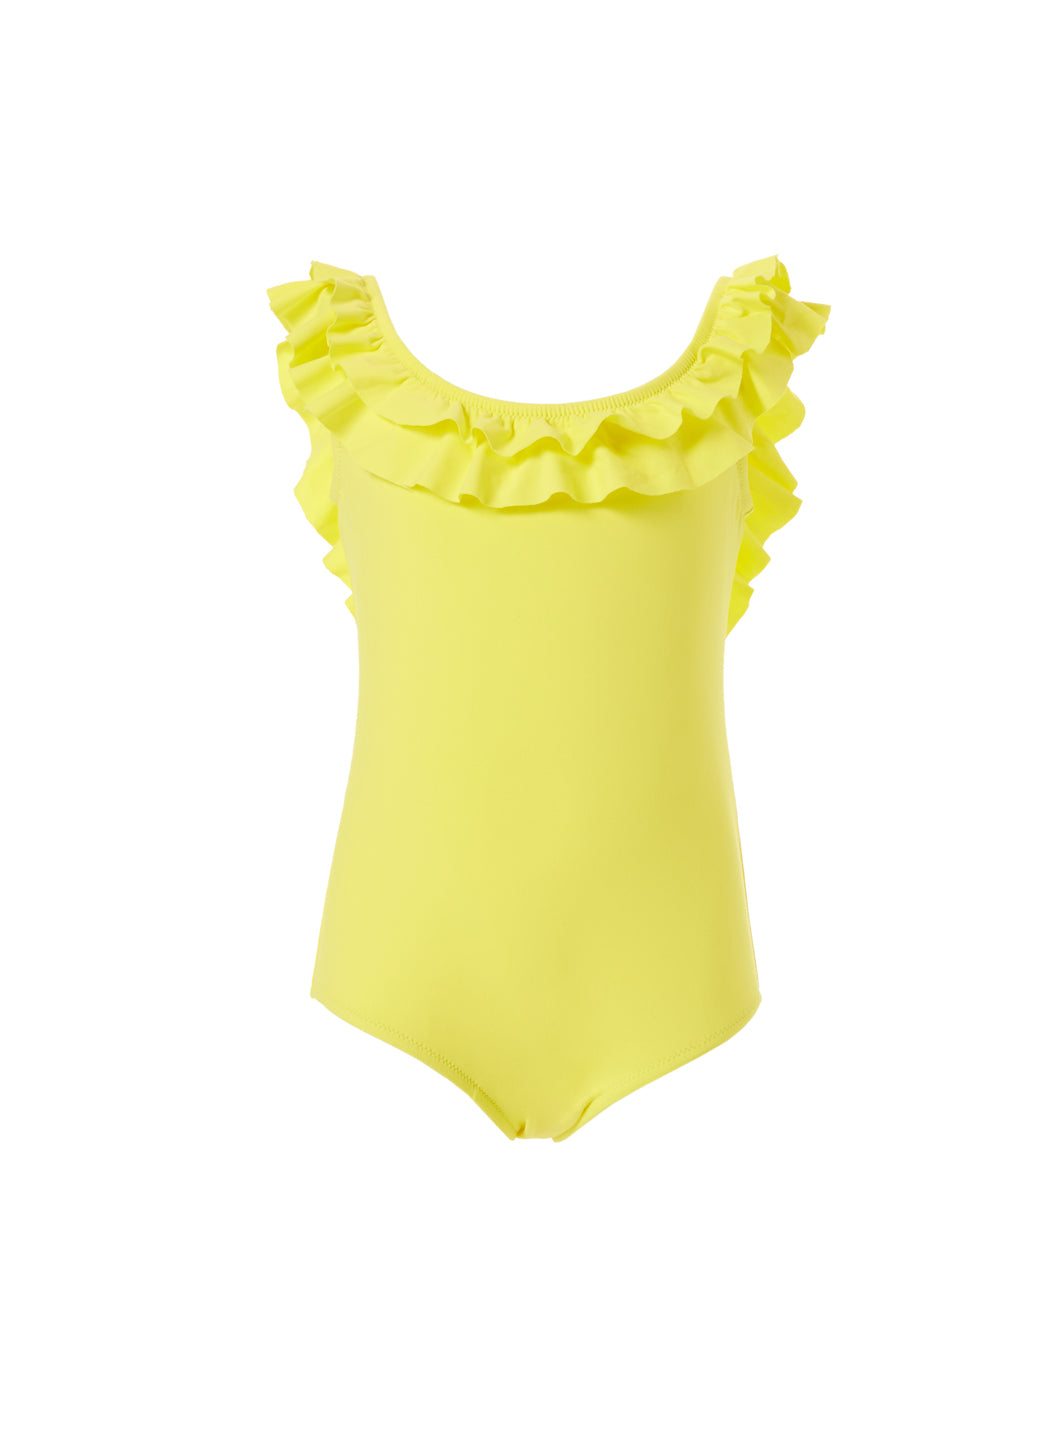 Baby Missy Yellow Over the Shoulder Frill Onepiece Swimsuit